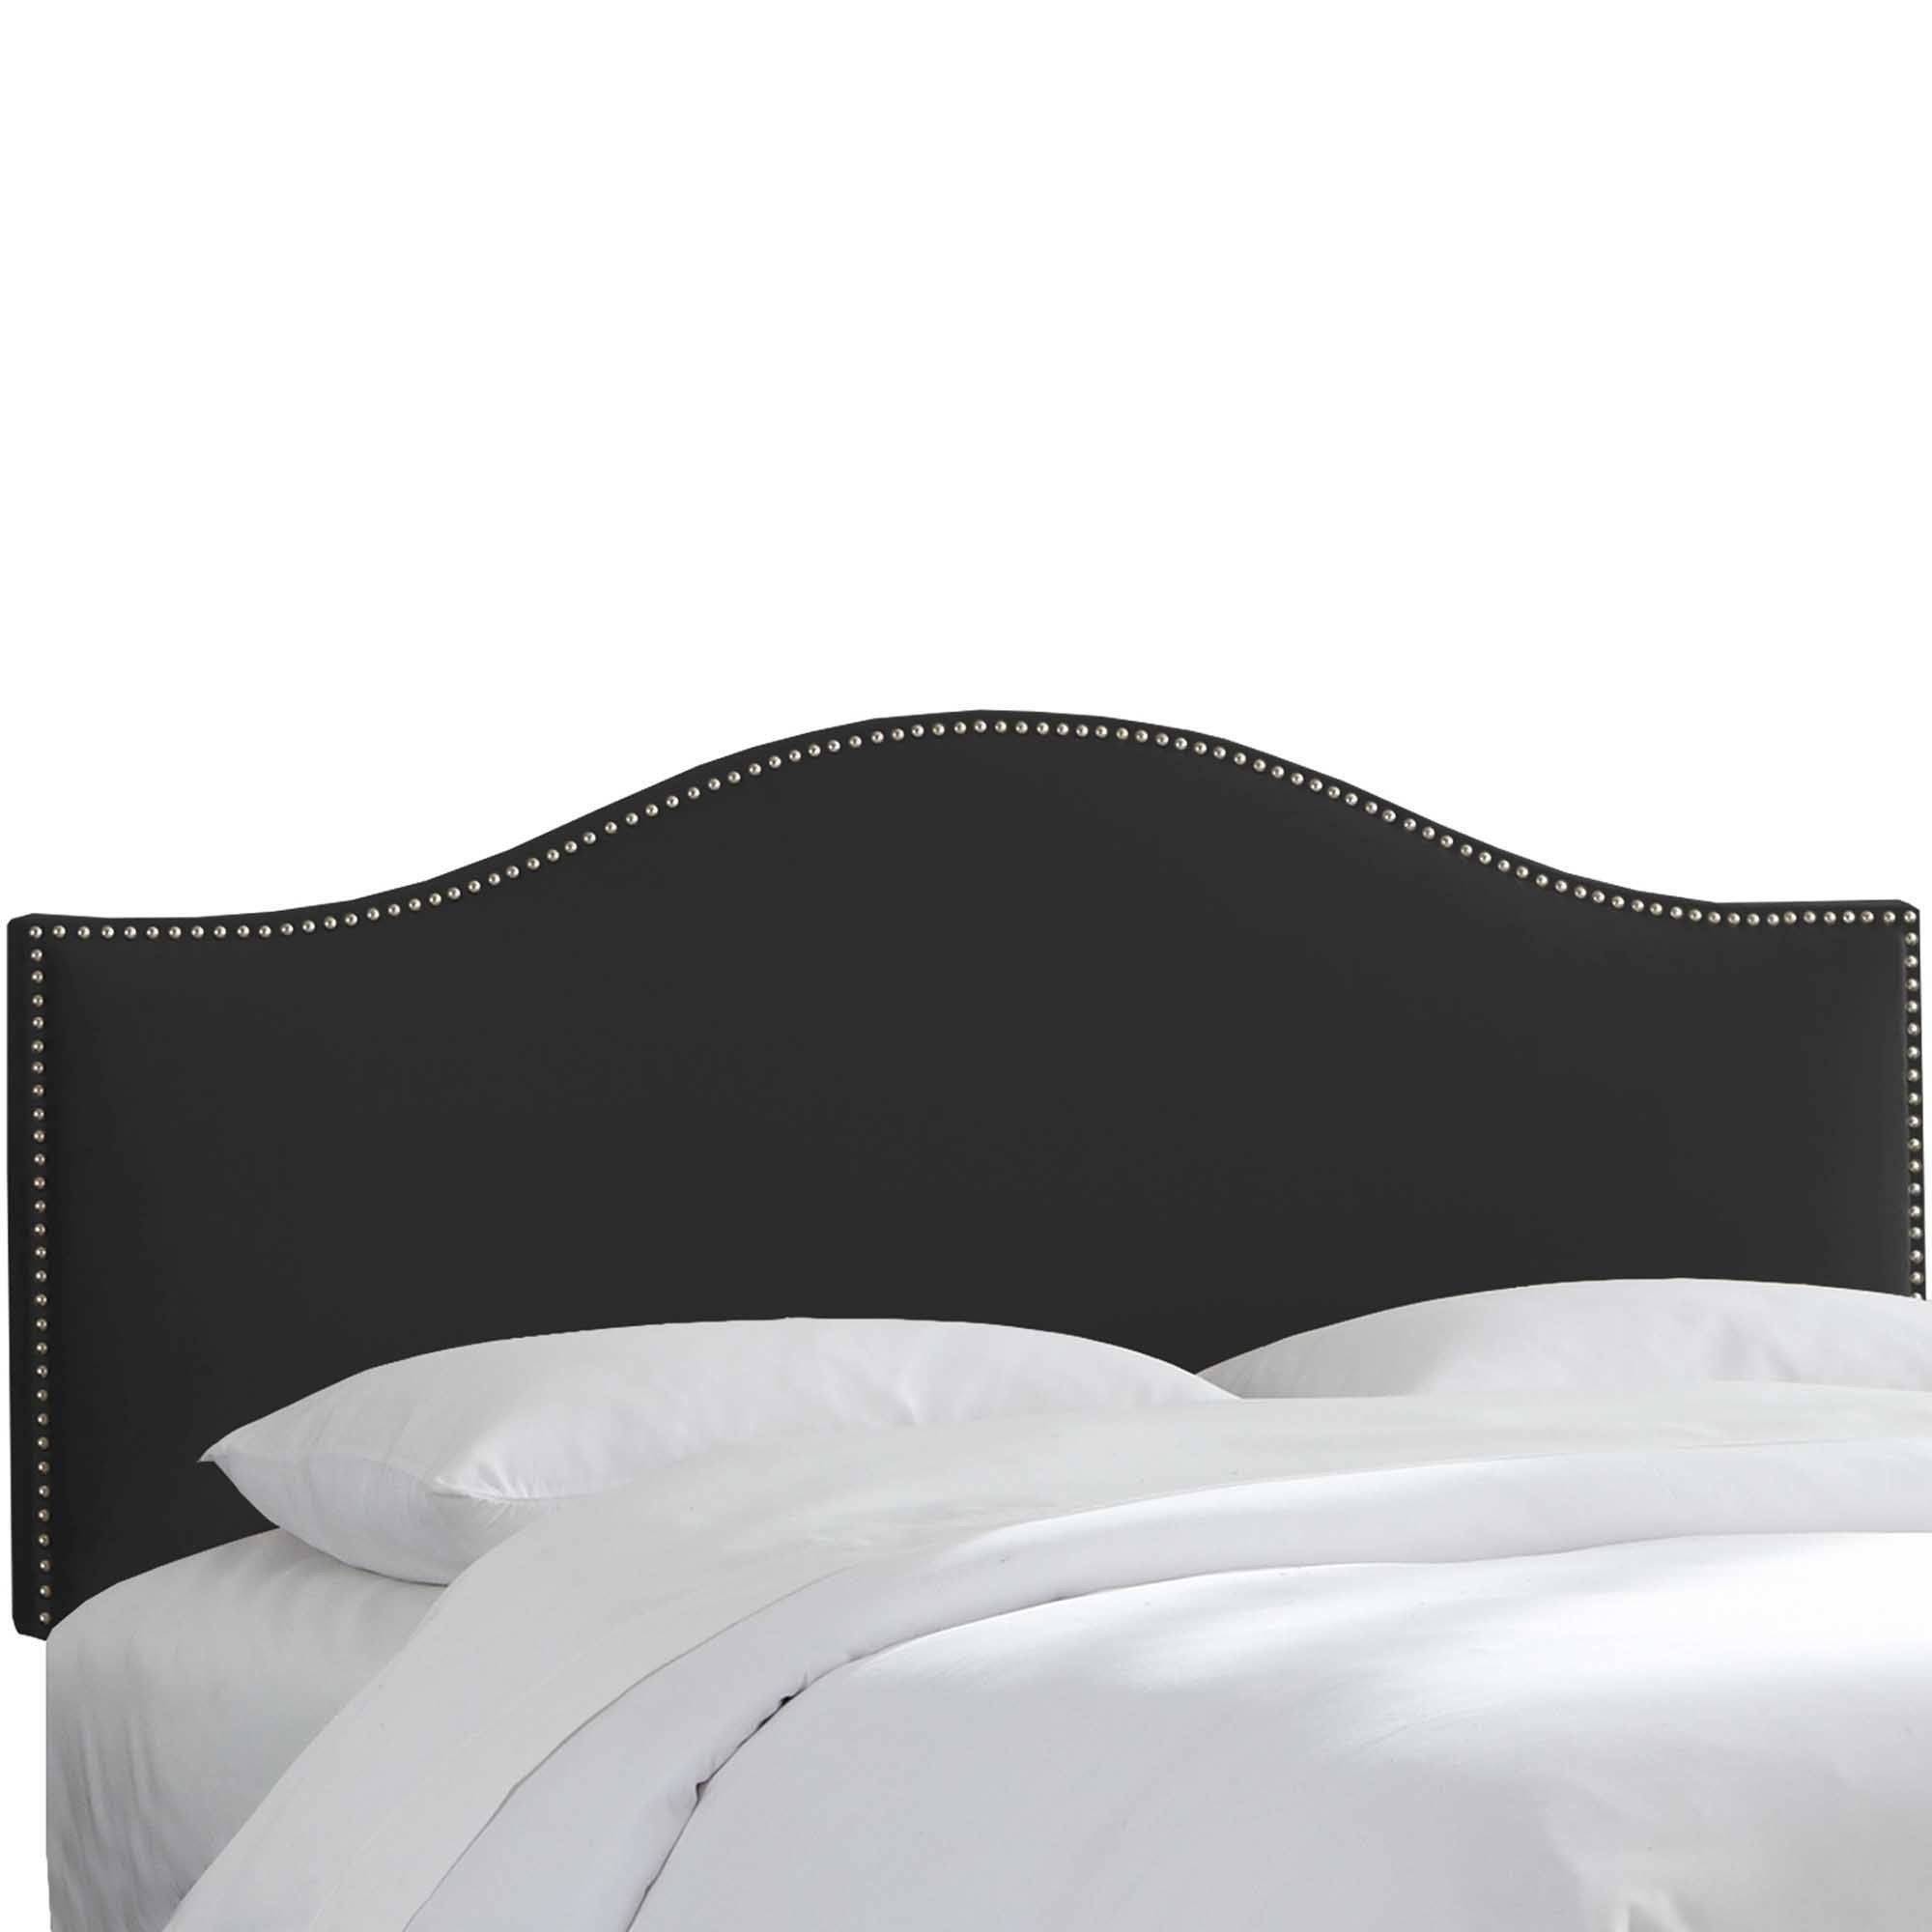 crushed headboards black velvet king tufted fullqueen of headboard gray arched frame impressive size queen twin diy nice full